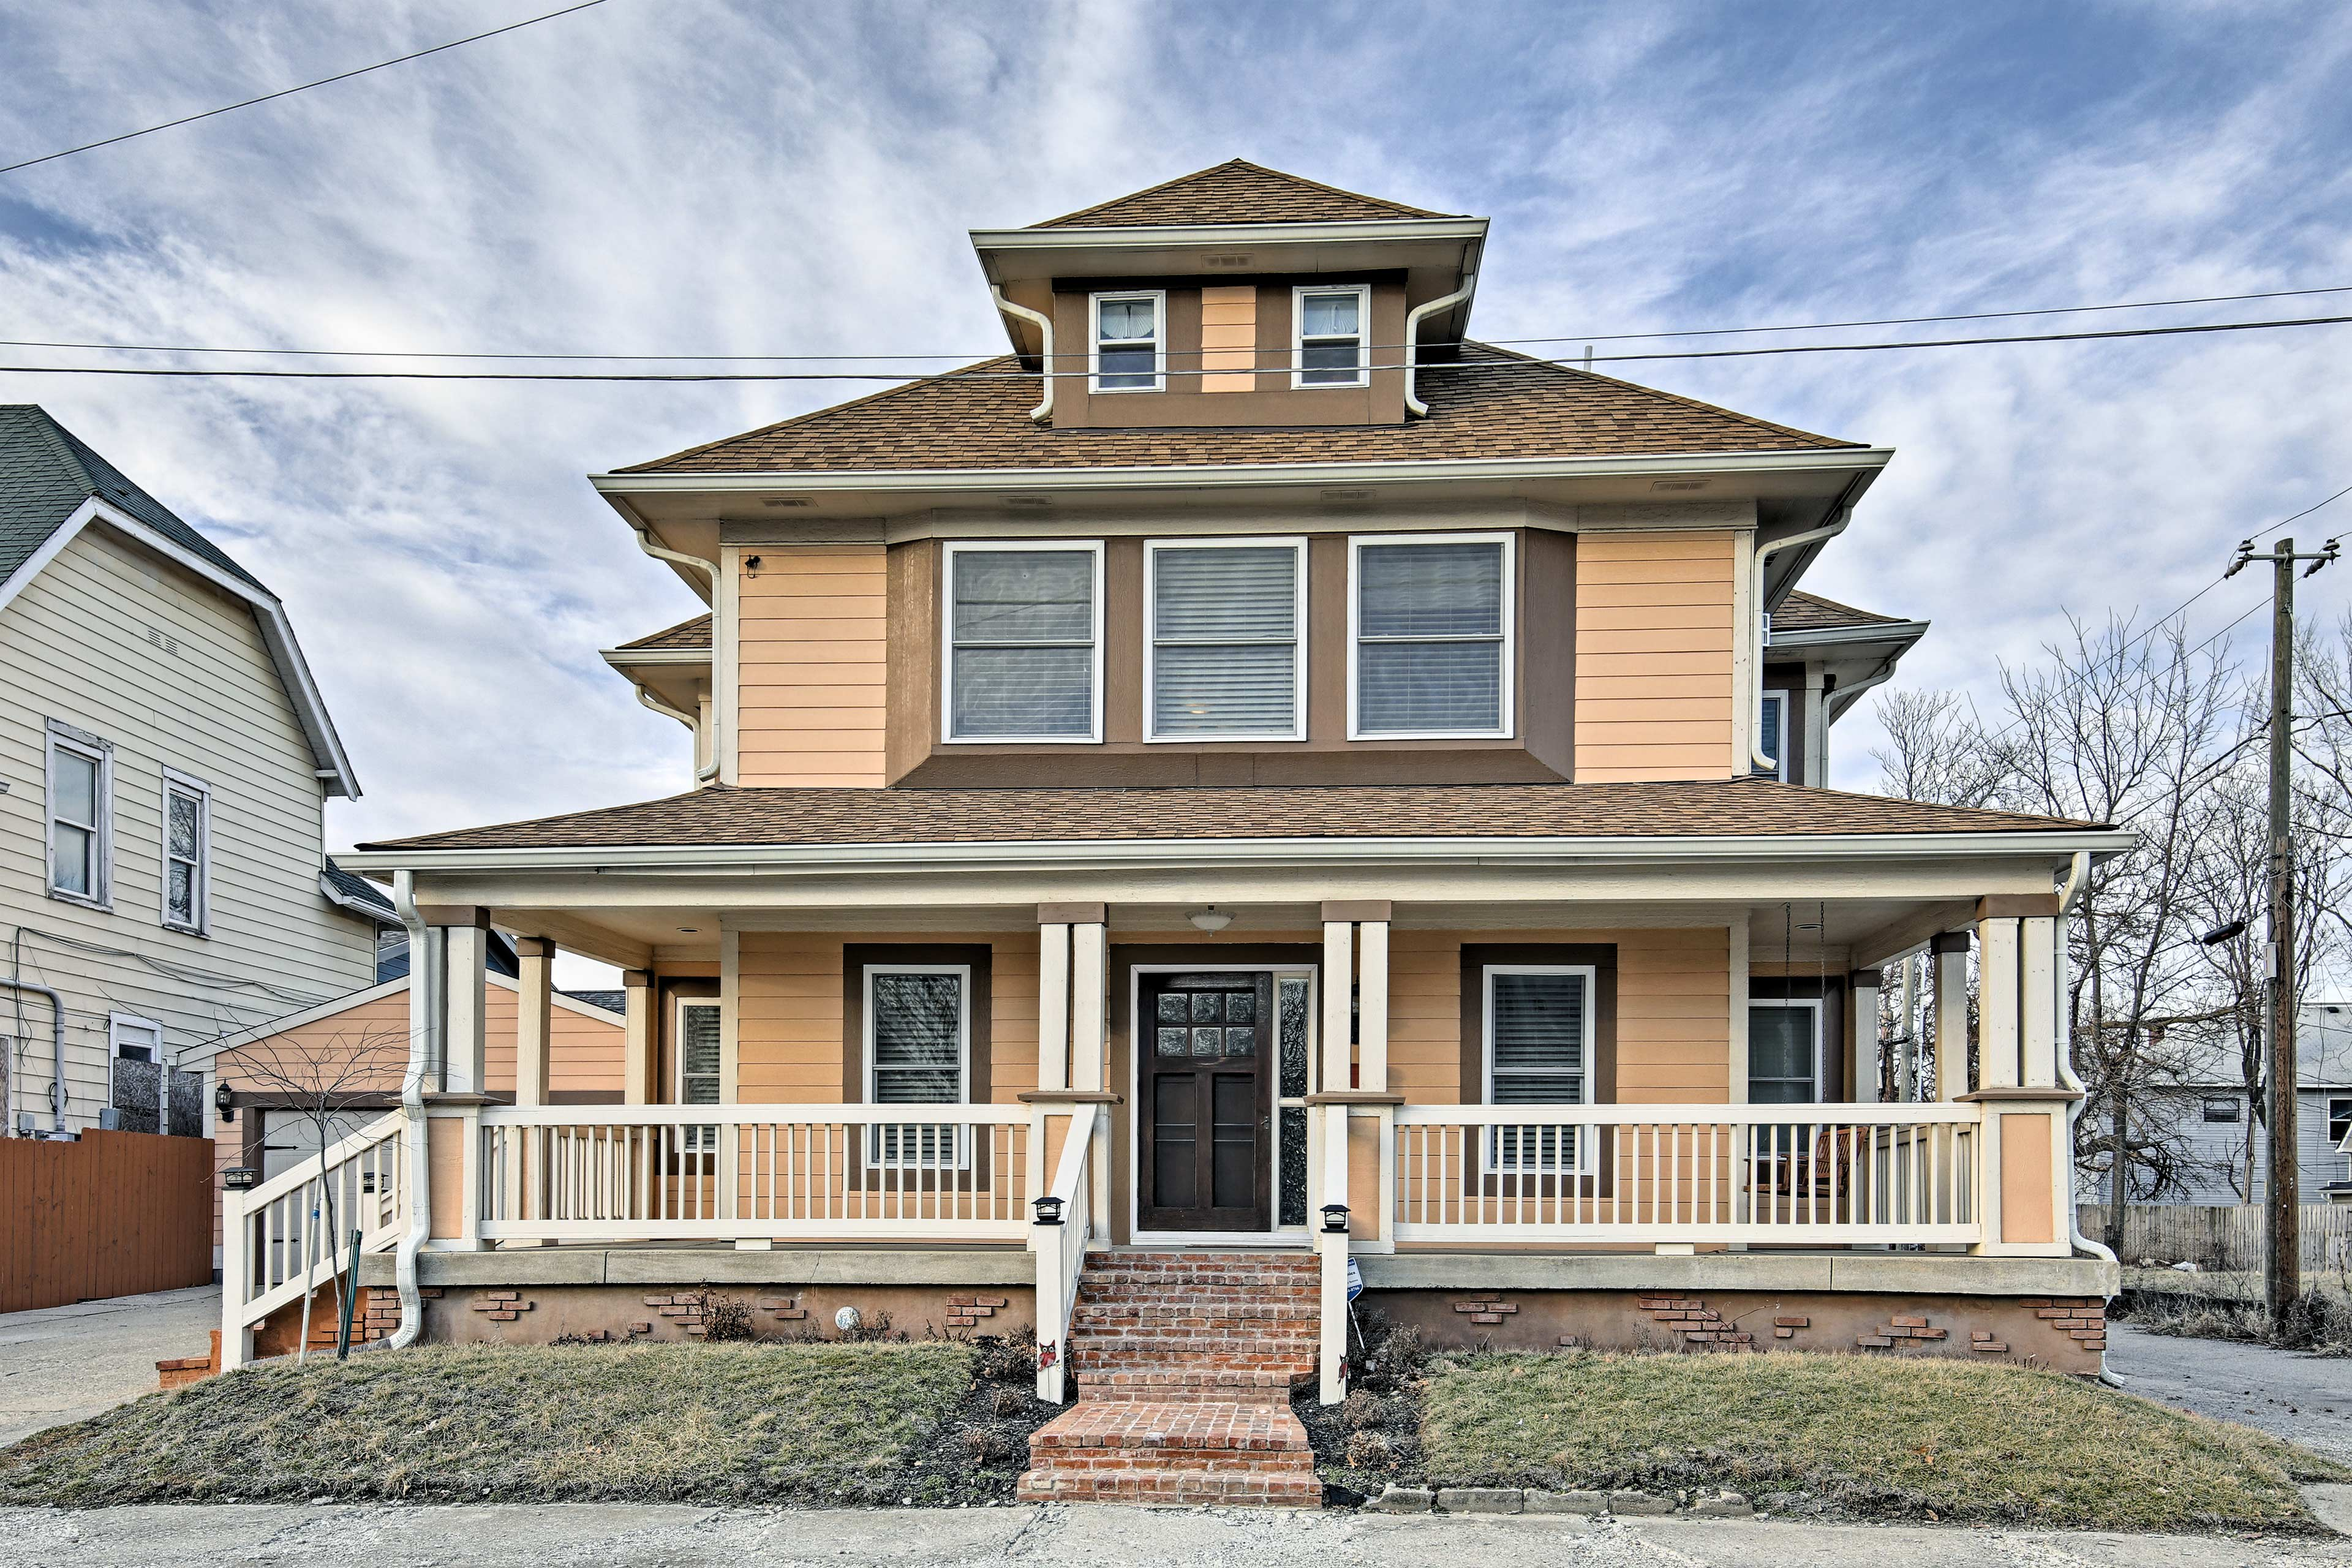 This 4-bed, 4-bath vacation rental home is perfect for your next Indy getaway!